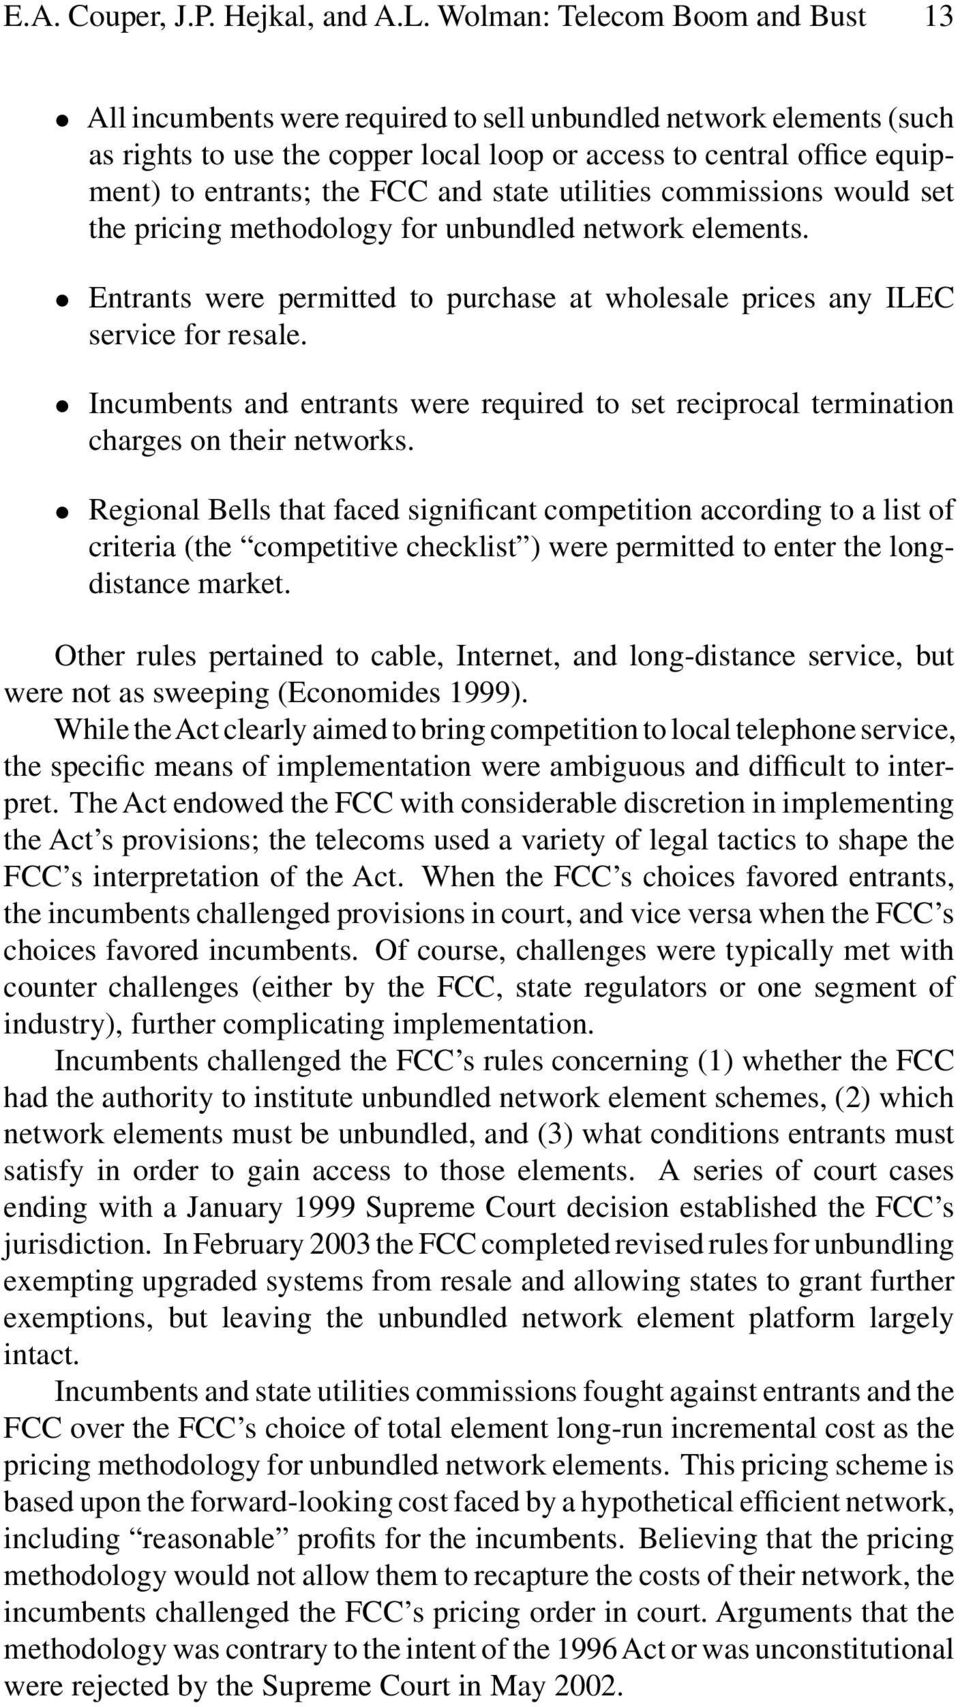 FCC and state utilities commissions would set the pricing methodology for unbundled network elements. Entrants were permitted to purchase at wholesale prices any ILEC service for resale.